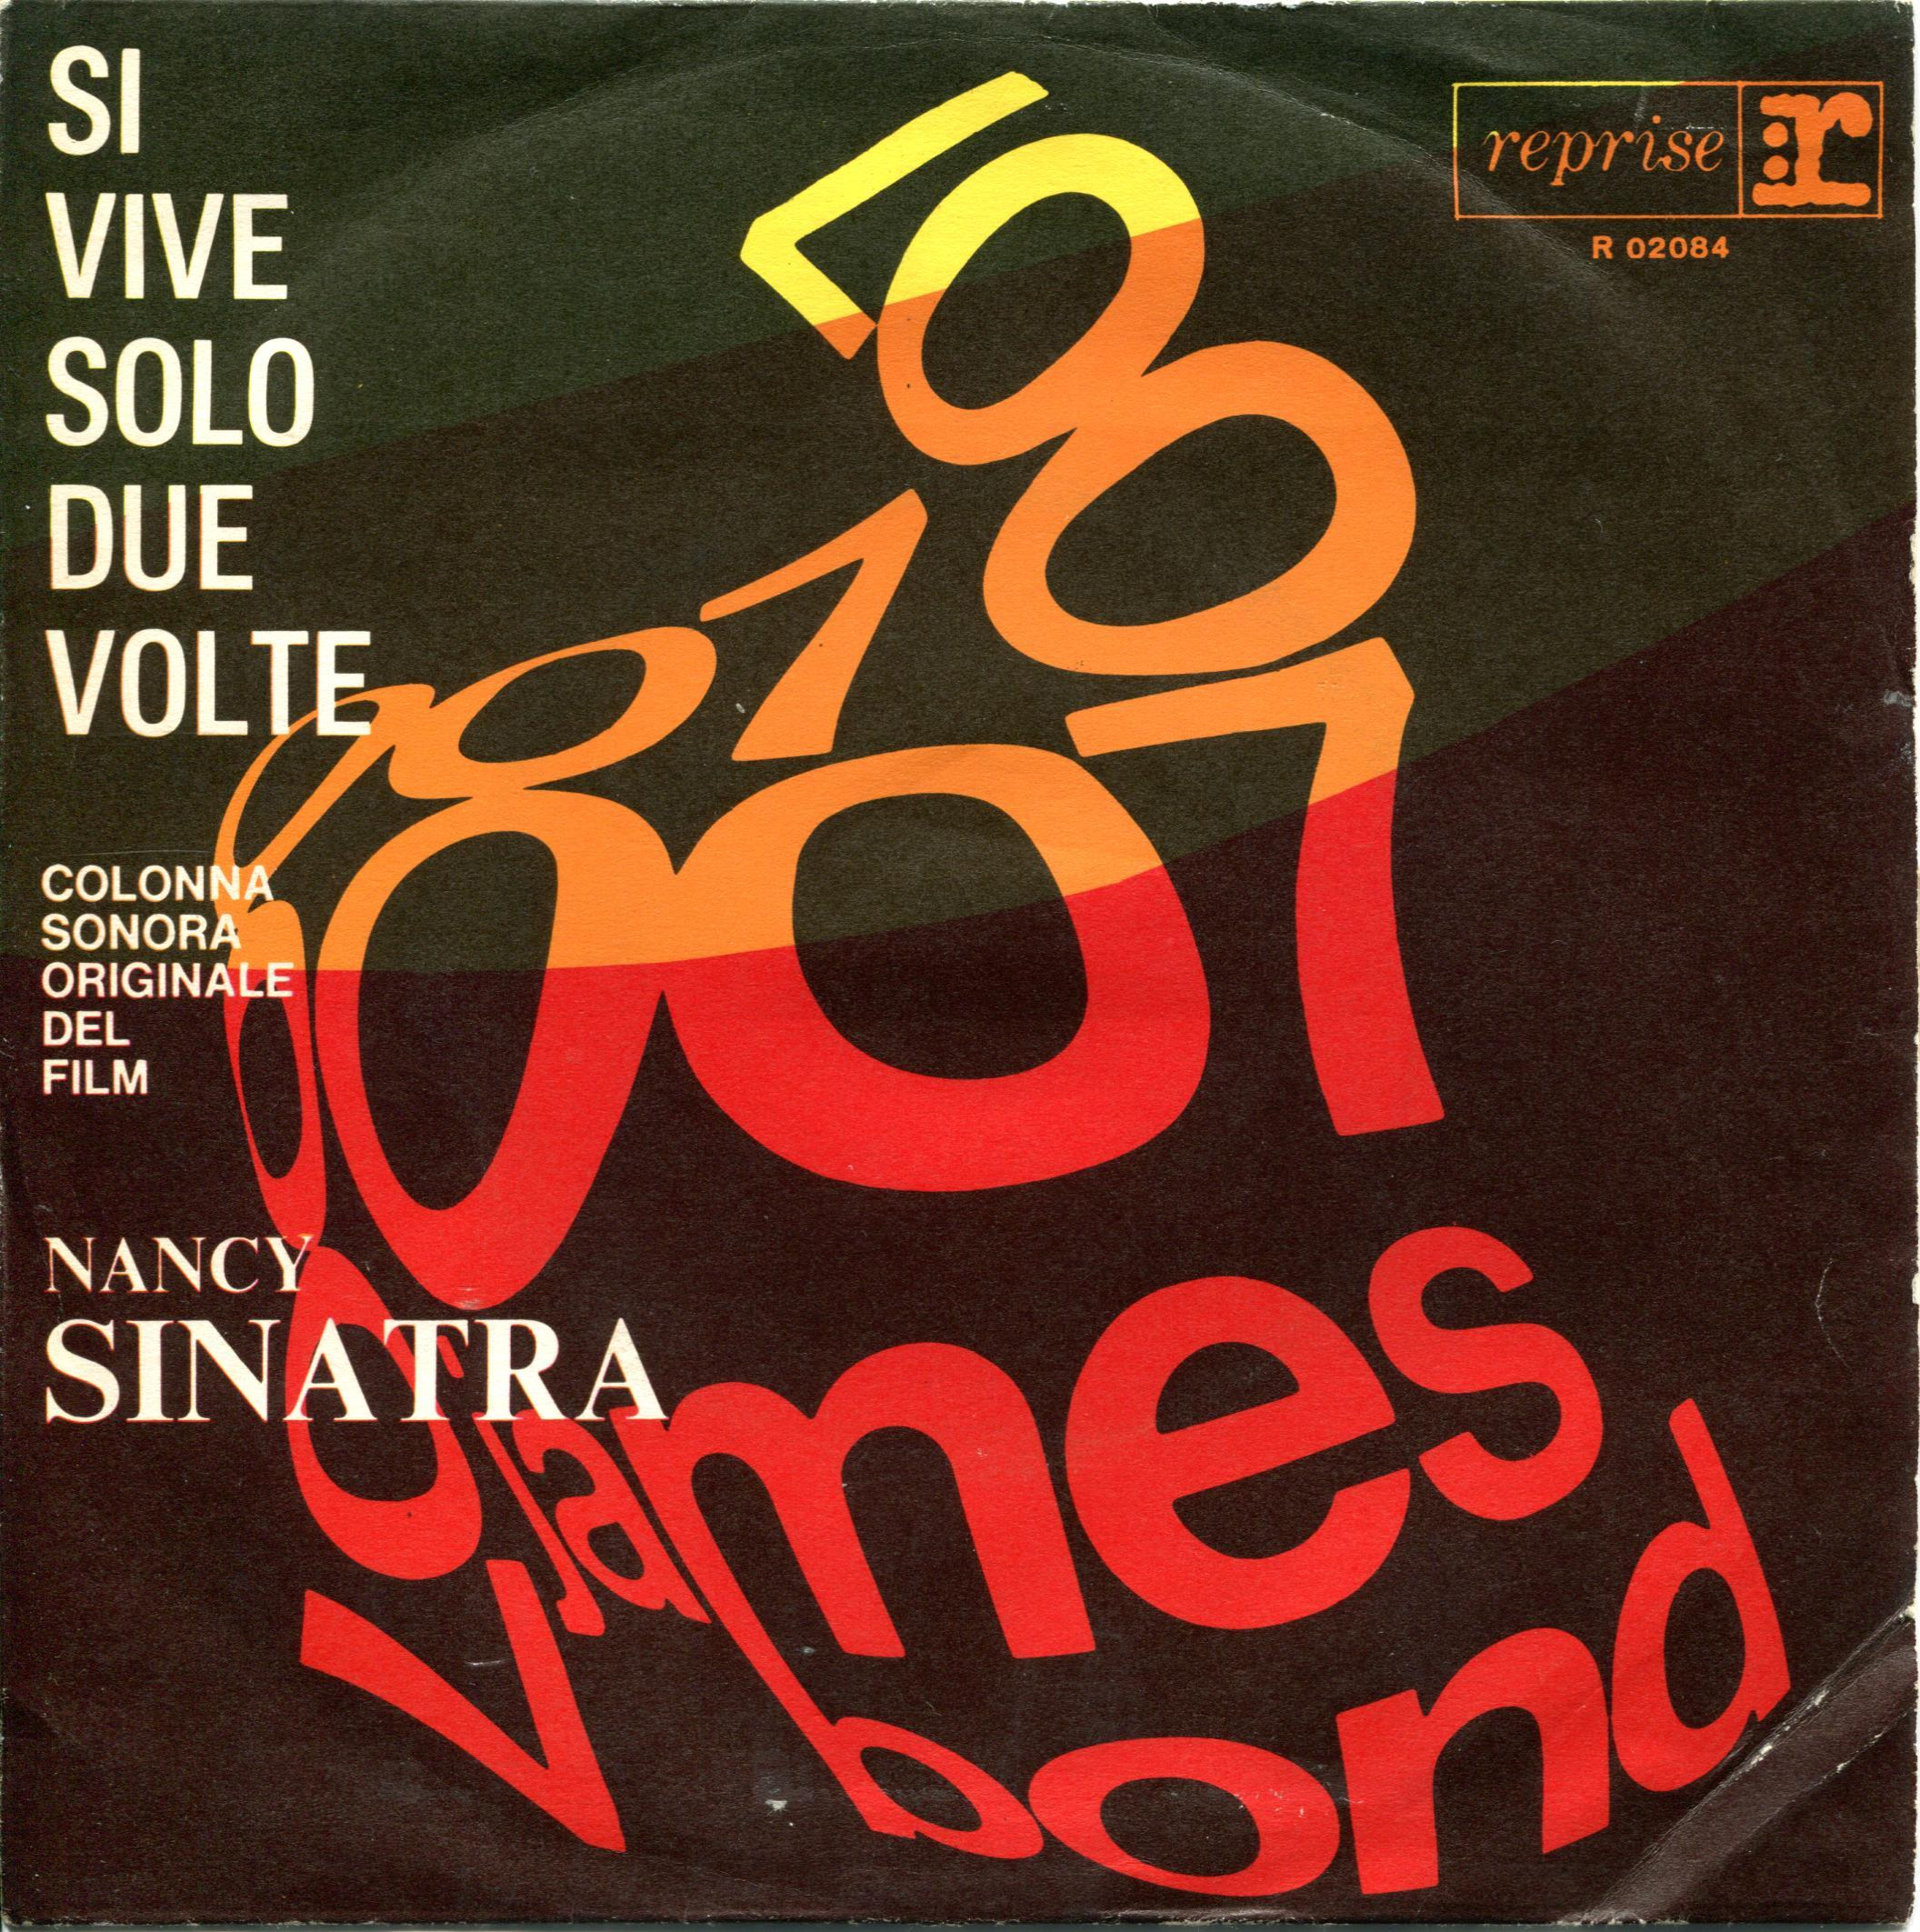 Nancy Sinatra Si Vive Solo Due Volte swirly writing